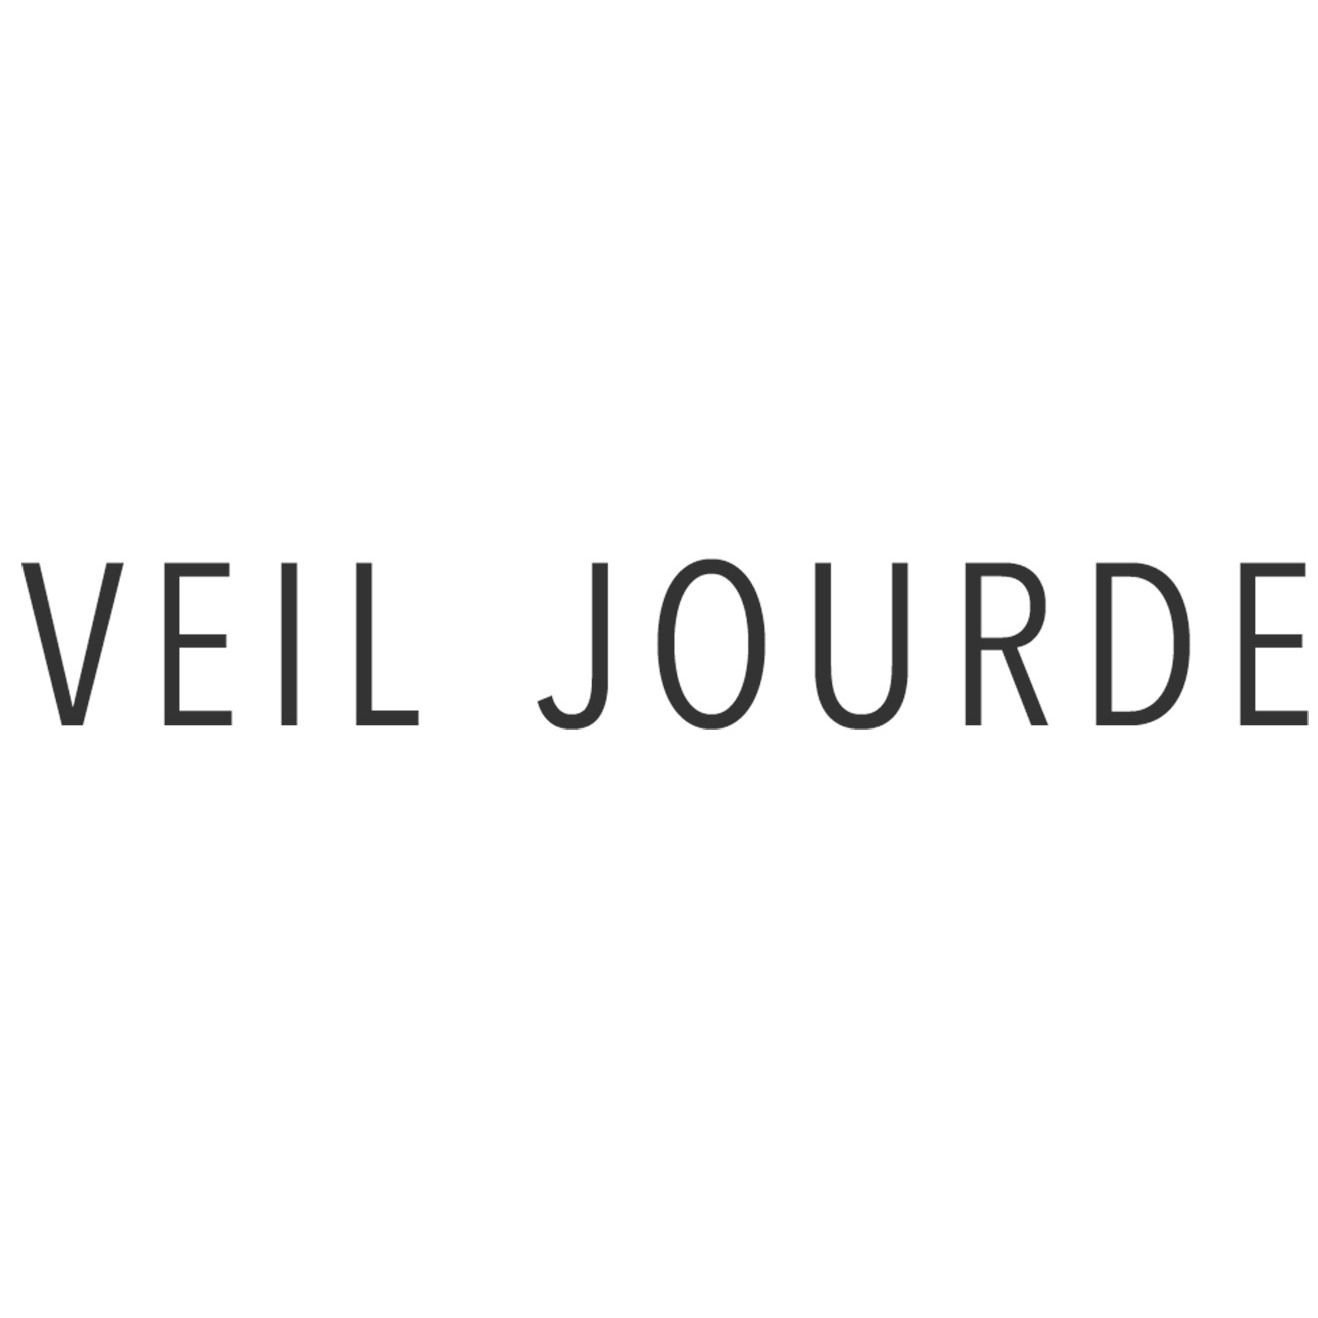 the Veil Jourde logo.